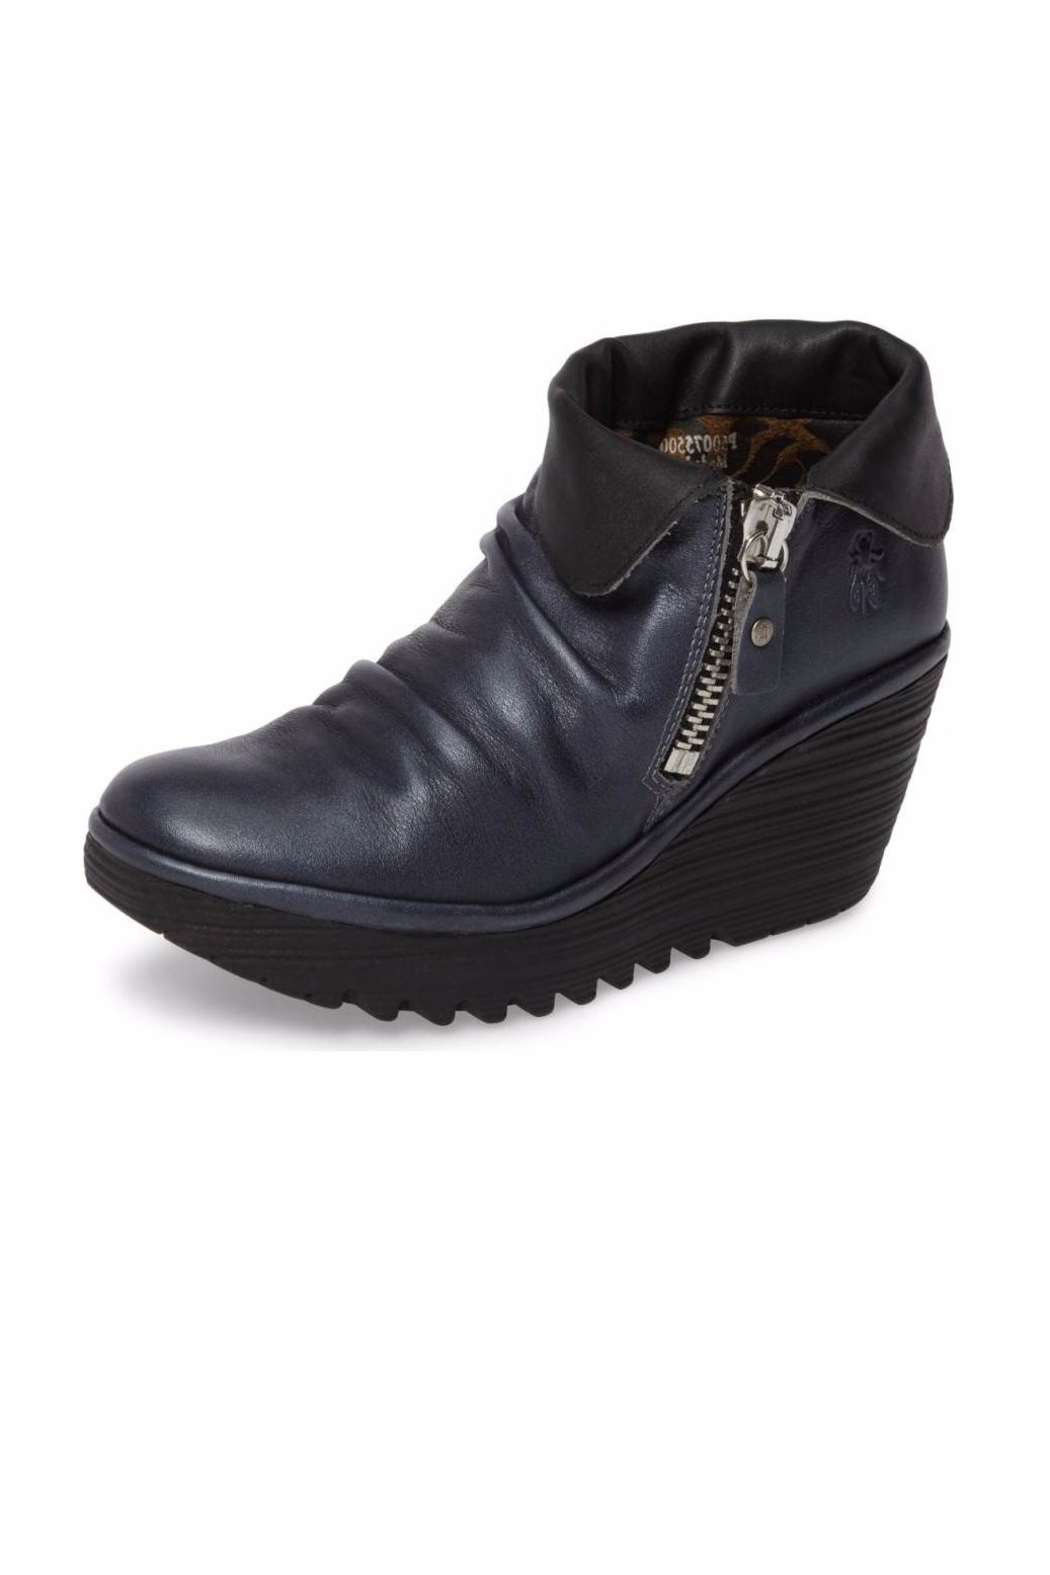 97f859bb25c Fly London Yoxi Wedge Booties from Edmonton by Modern Sole — Shoptiques